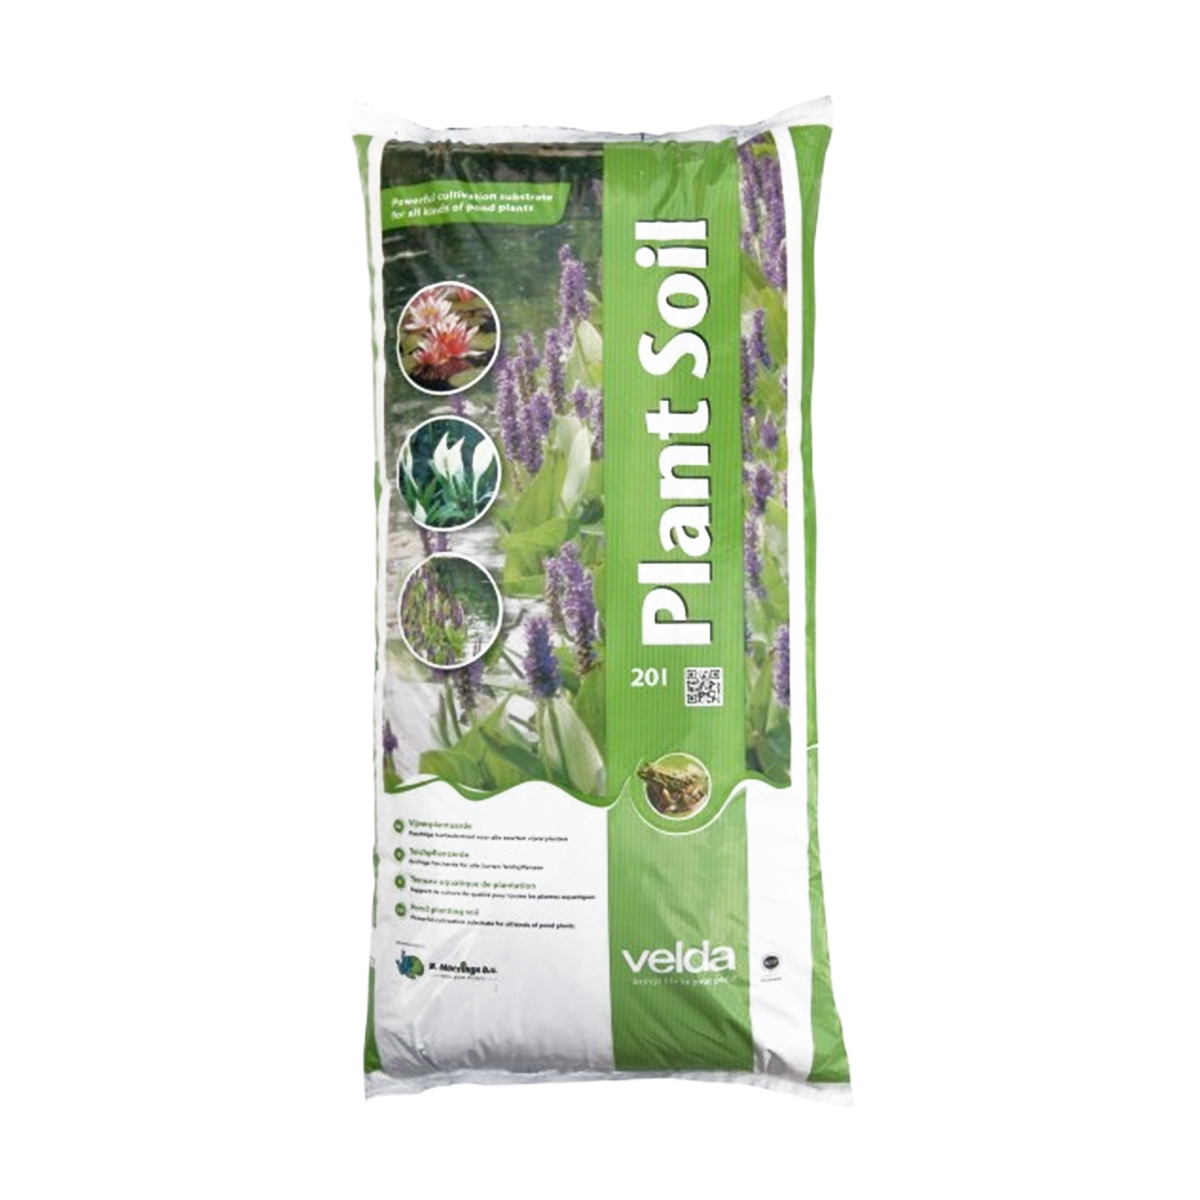 Moerings aquatic velda plant soil for pond 20 litre bag for Compost soil bags